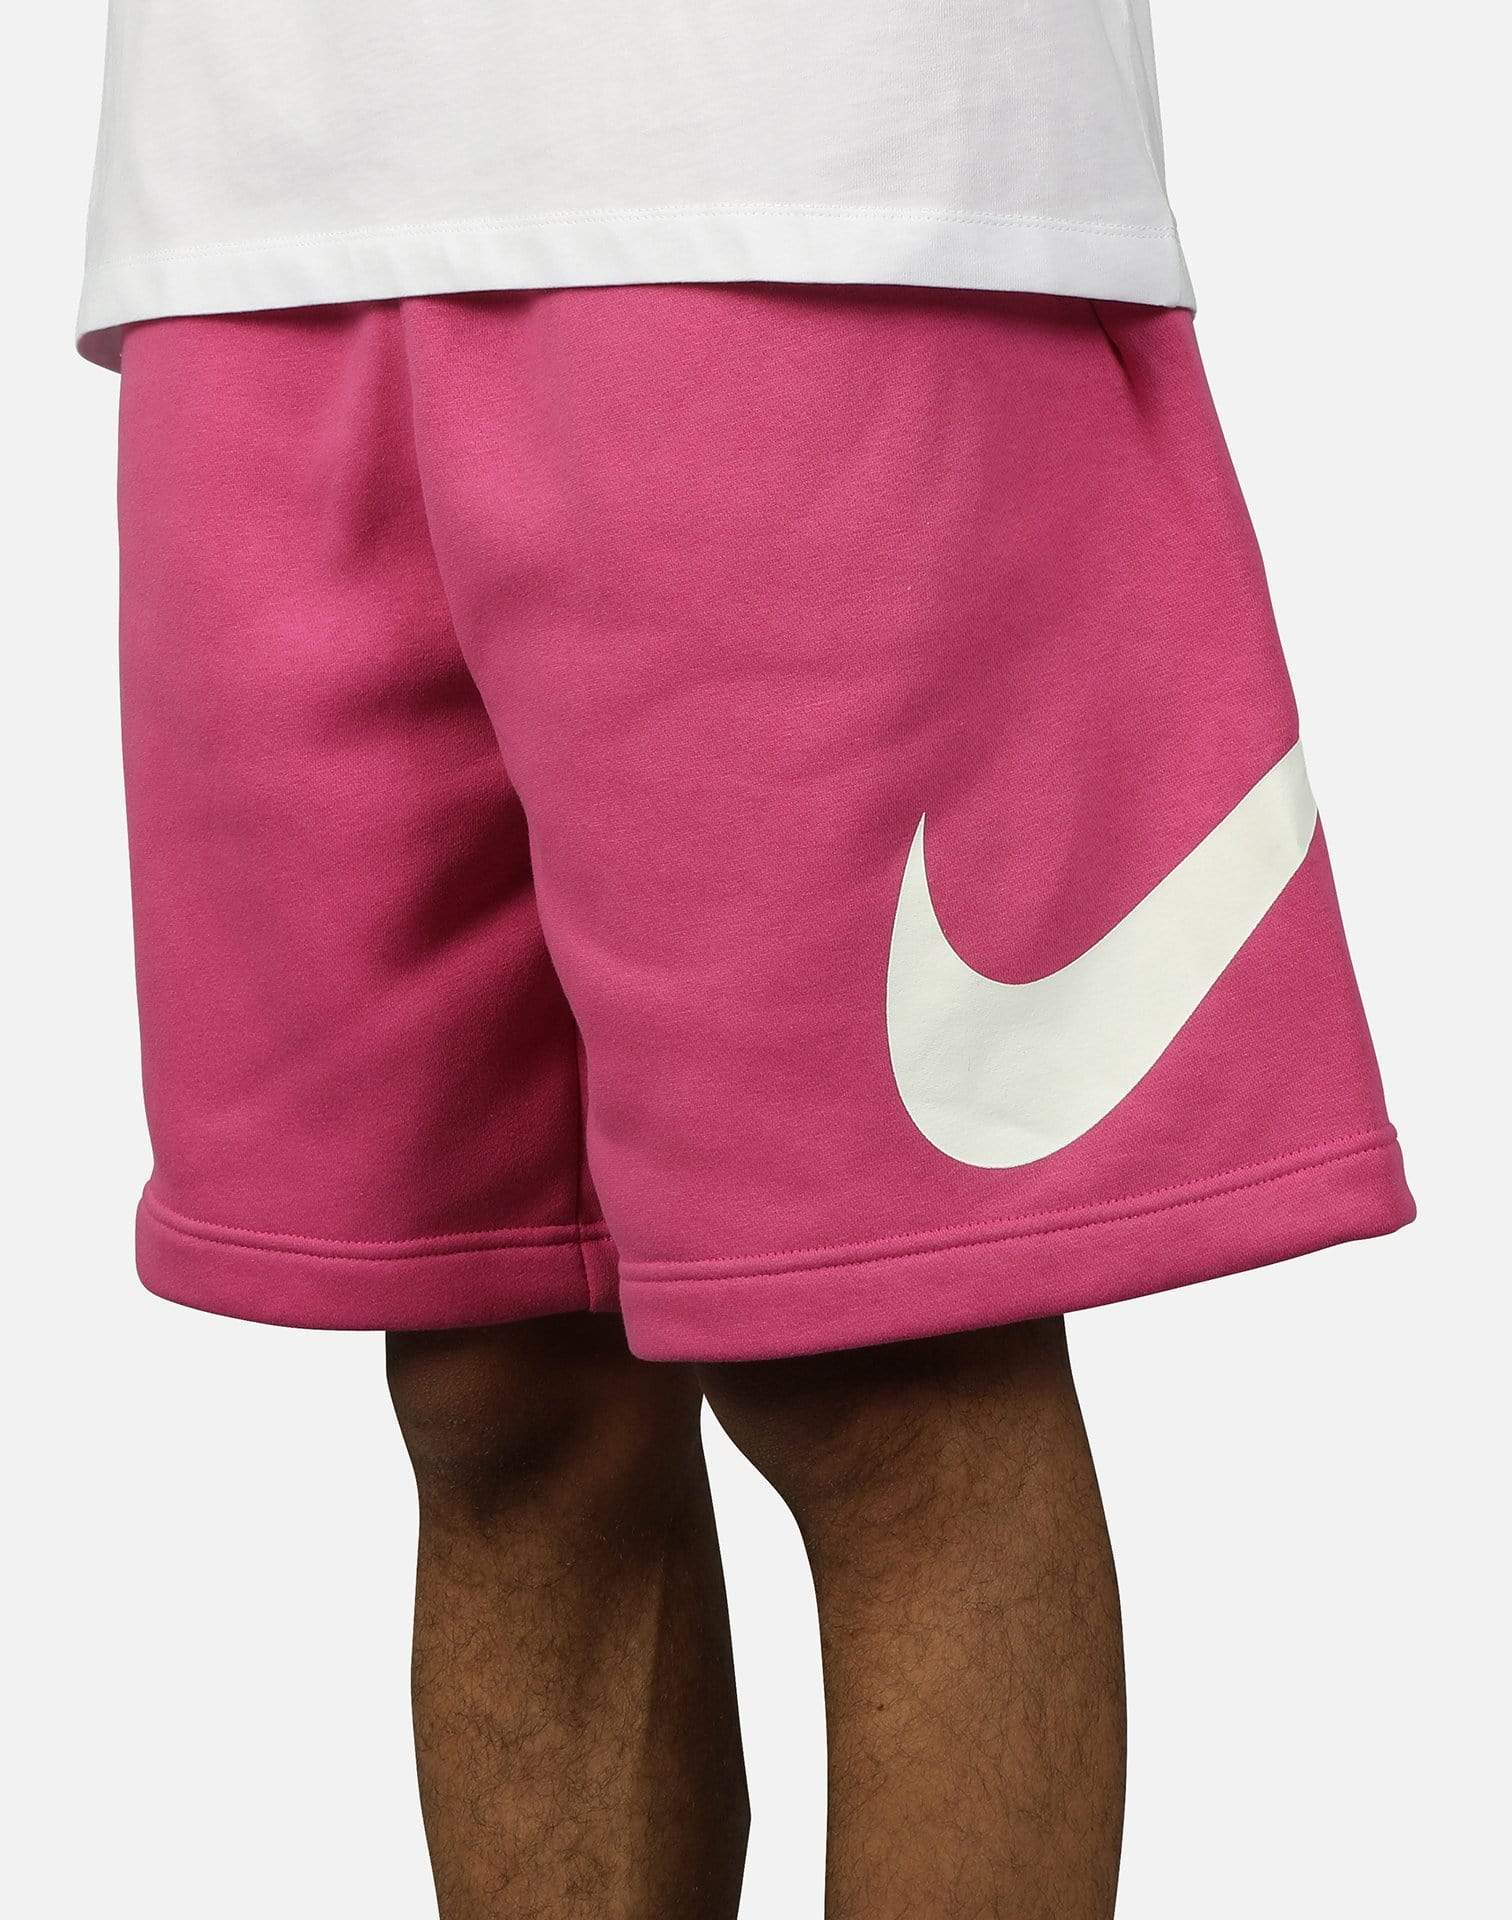 NSW CLUB GRAPHIC SWOOSH SHORTS – DTLR